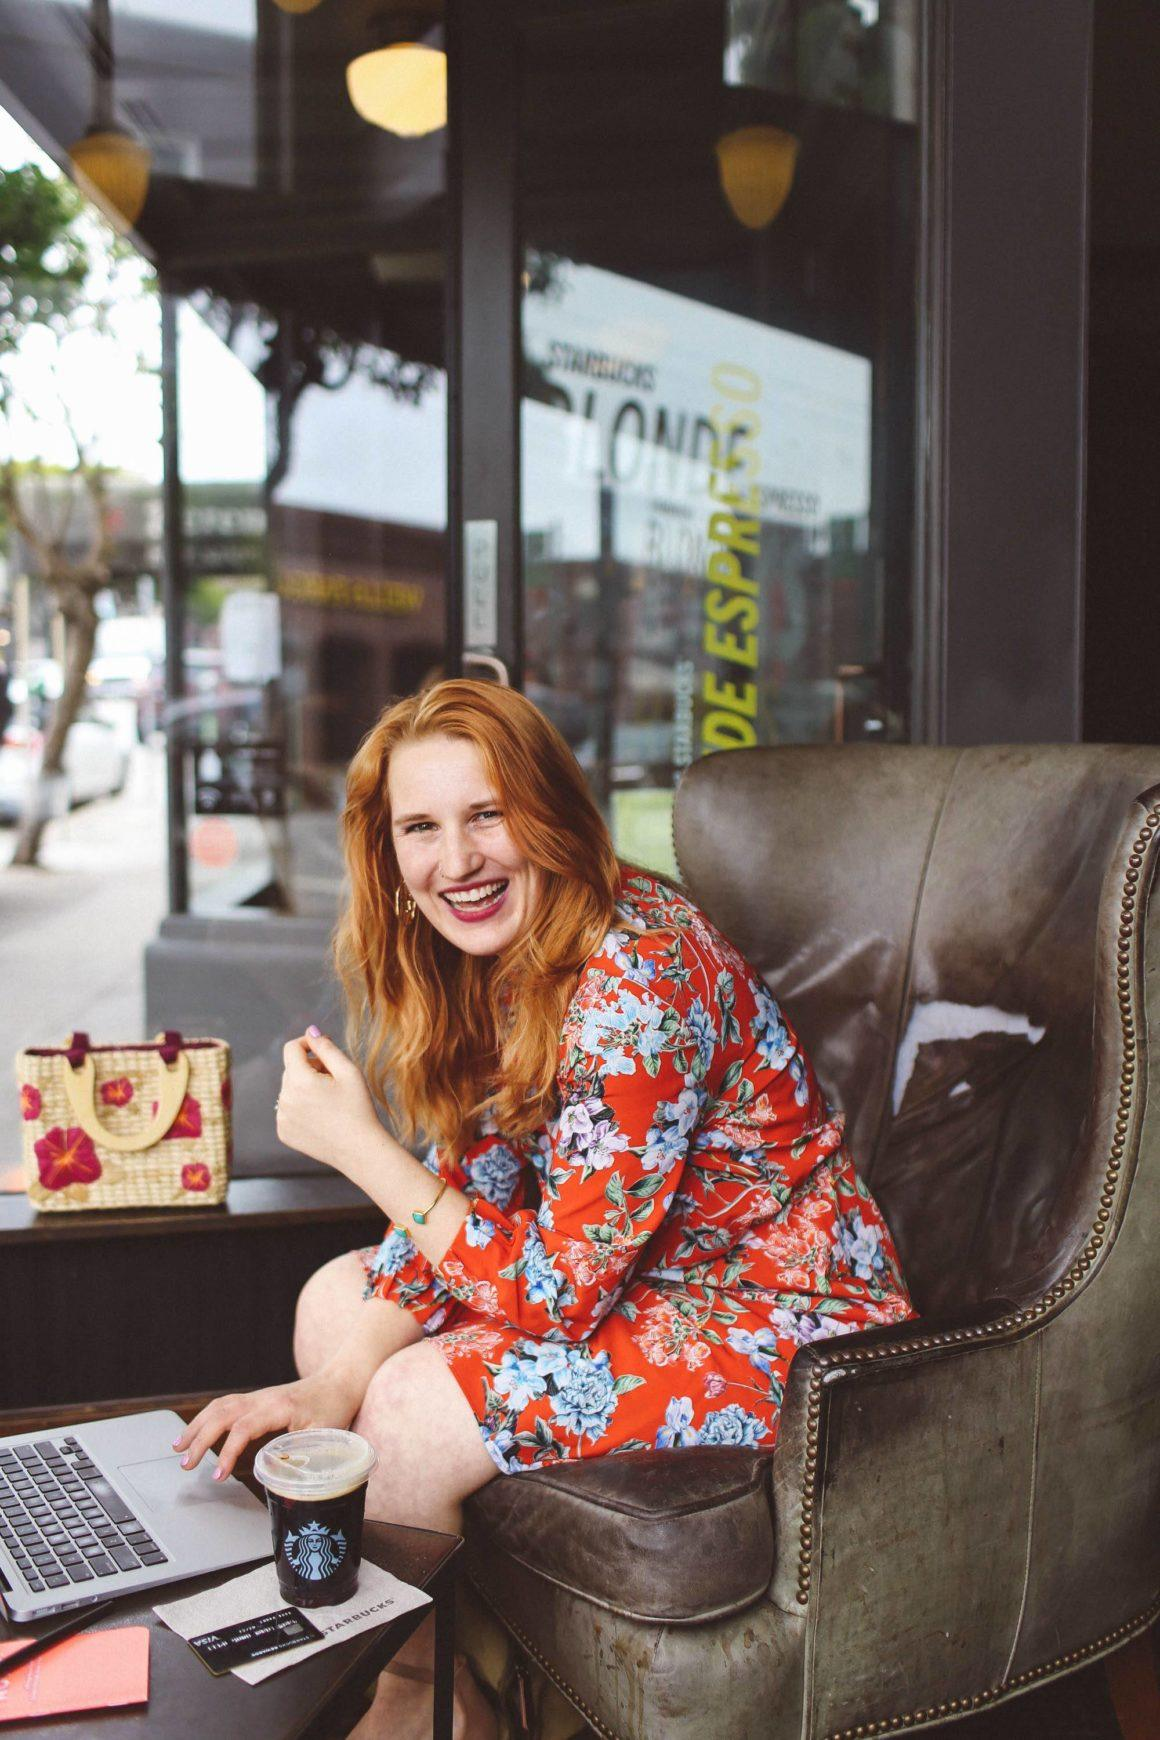 Woman in red floral dress working at Starbucks